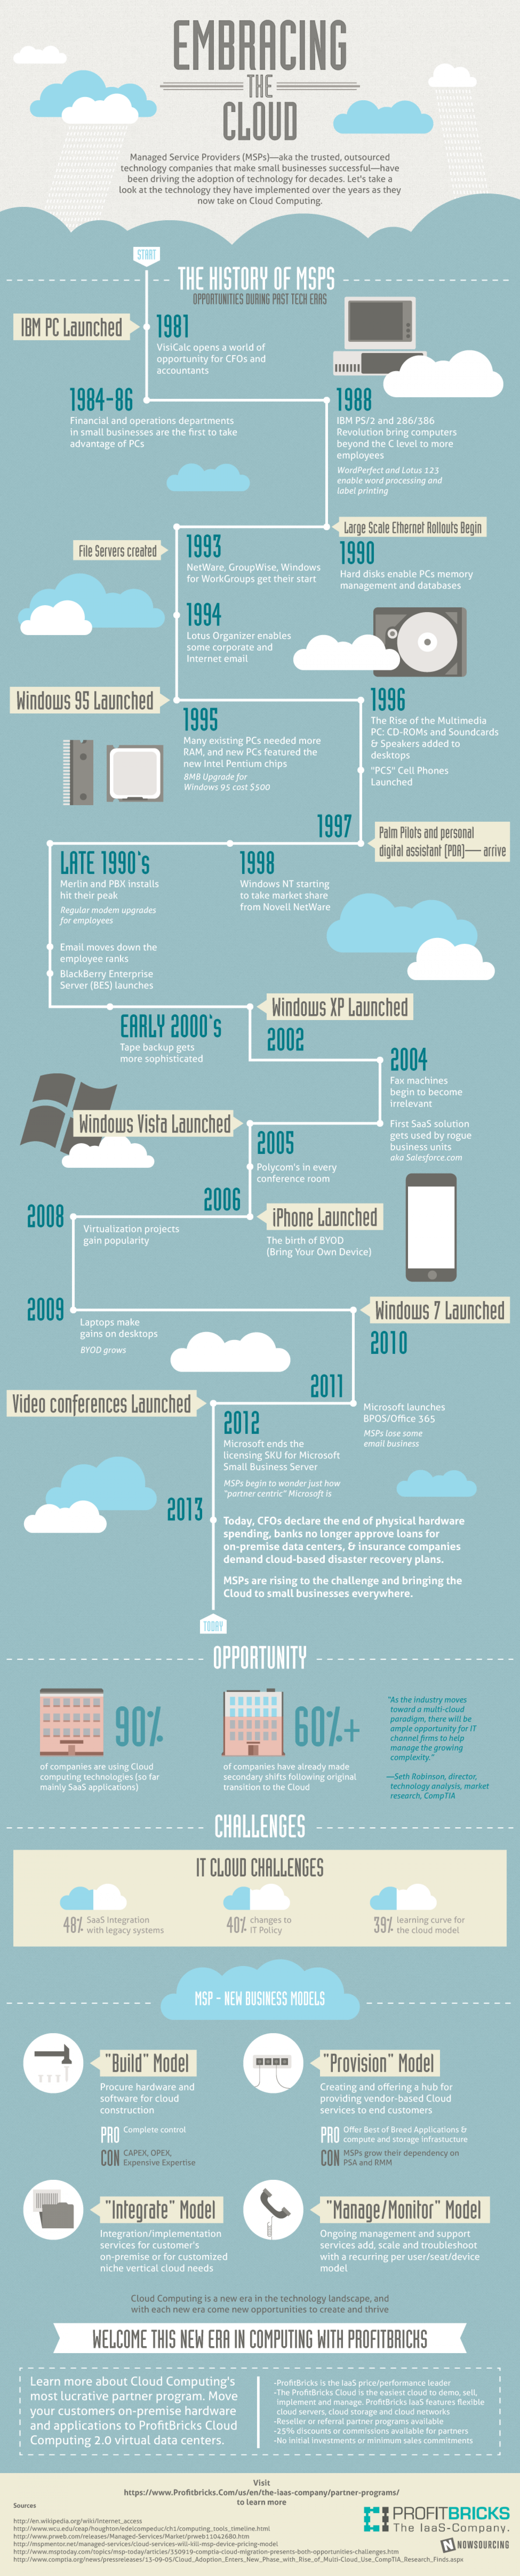 Embracing the Cloud Infographic